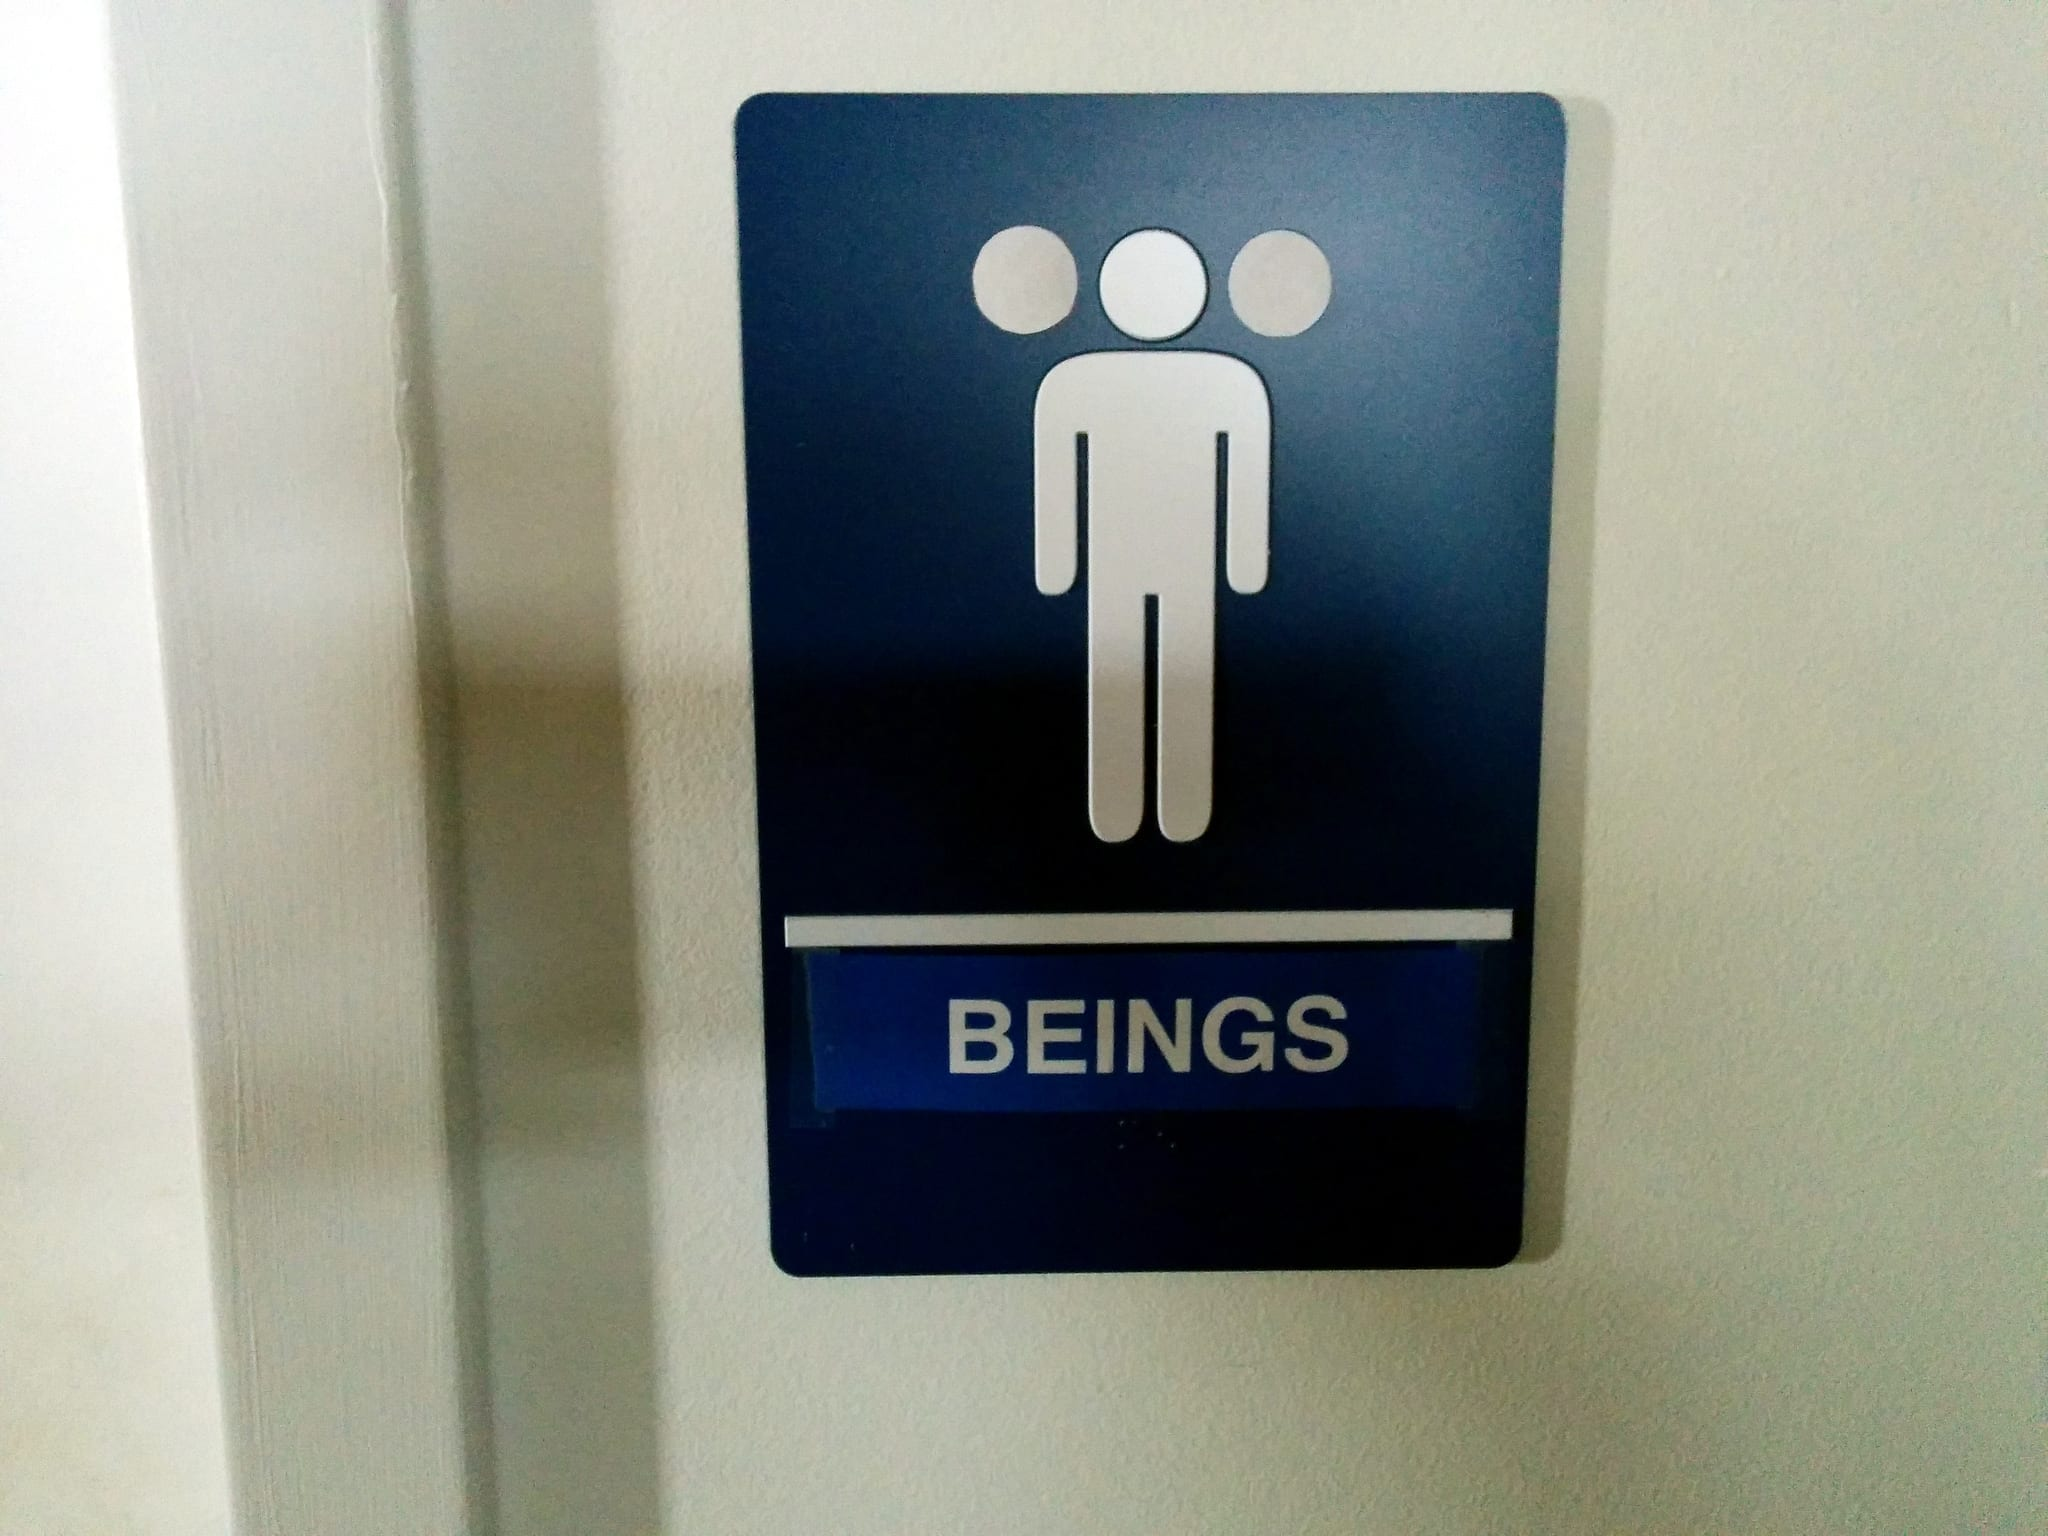 Nongendered toilet sign 2, Electronic Frontier Foundation, California, USA; image courtesy of Cory Doctorow, via Flickr, CC BY-SA 2.0, no changes made.